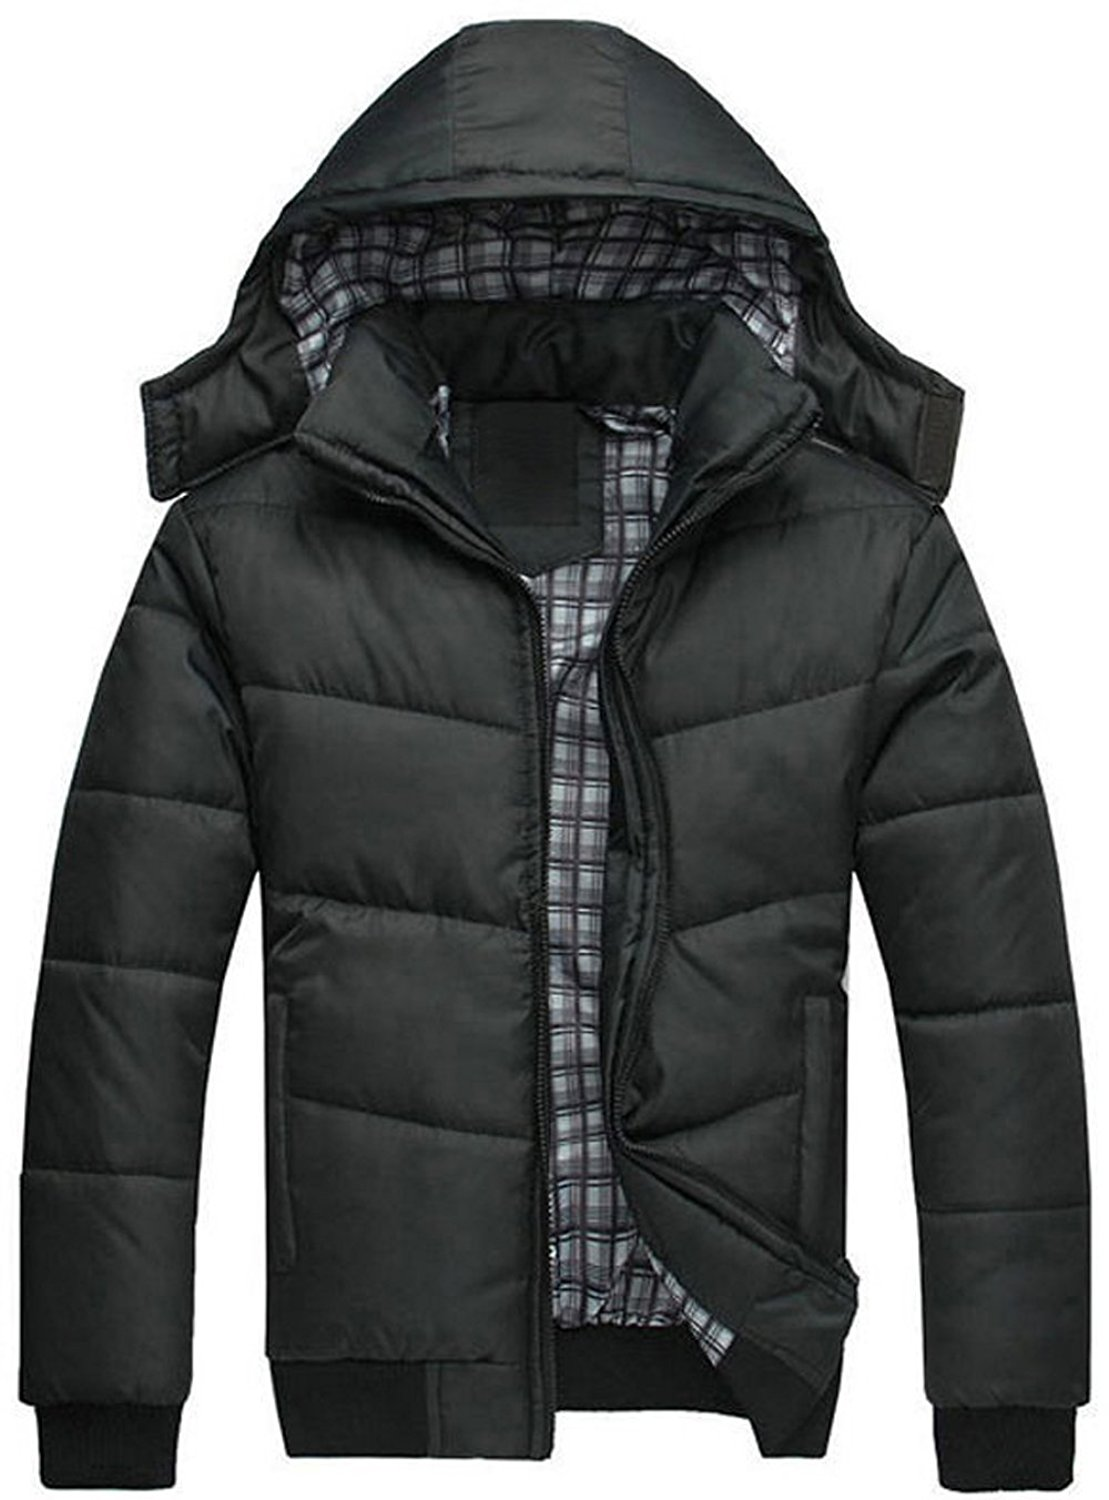 WSPLYSPJY Mens Lightweight Water-Resistant Packable Insulated Coat Down Jacket